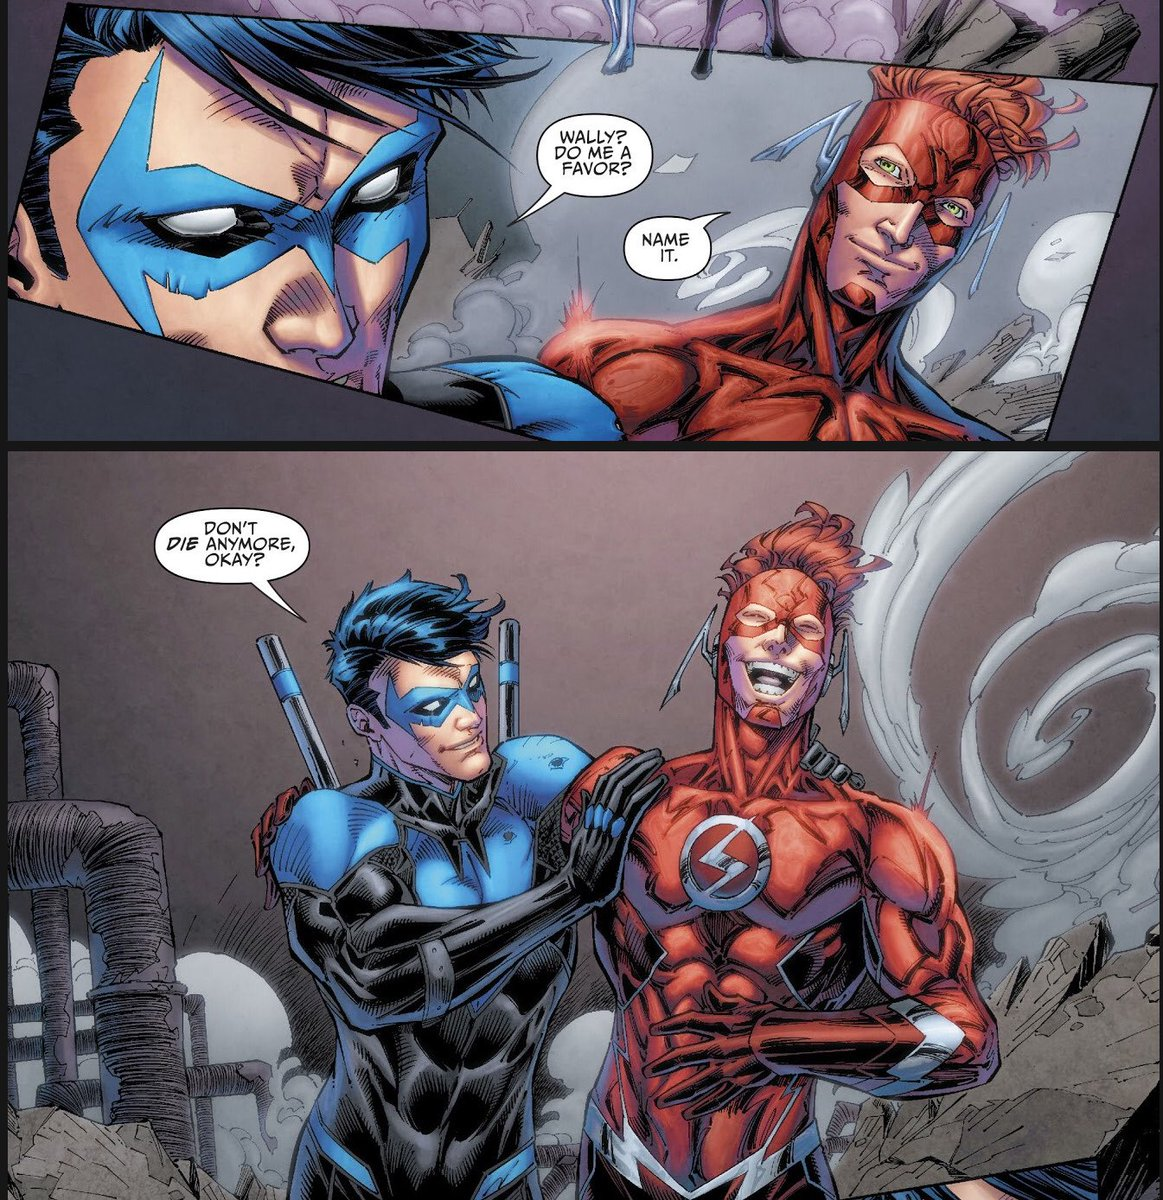 Nightwing speaks for all of us!   #TheFlash #Flash #WallyWest #DoYouEvenComicBook #DYECB #comics #Nightwing #NCBD  @ComicsFred @Rob_readscomics @KeithOneShot518 @AJ_ShopTalk @GradeAComics<br>http://pic.twitter.com/iwzqAXqmUf